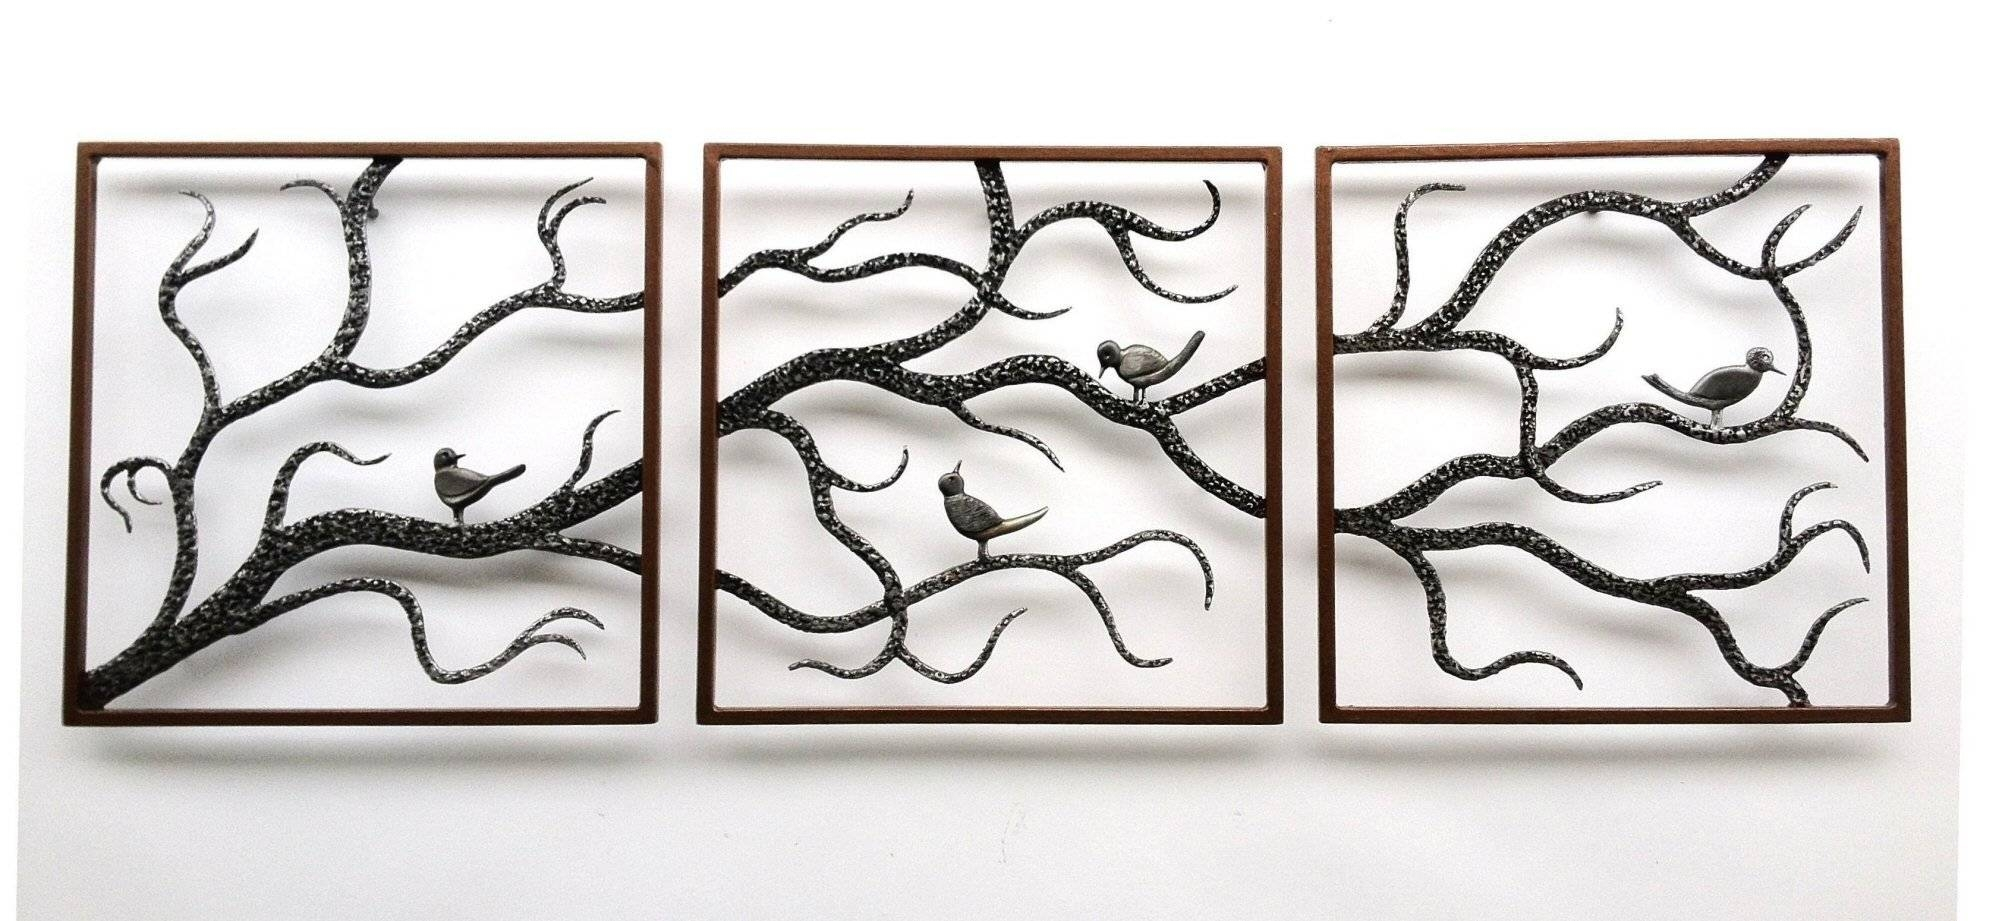 Wall Art Designs: Metal Wall Art Trees Birch Three Framed Cute With 2017 Metal Wall Art Birds (View 17 of 20)